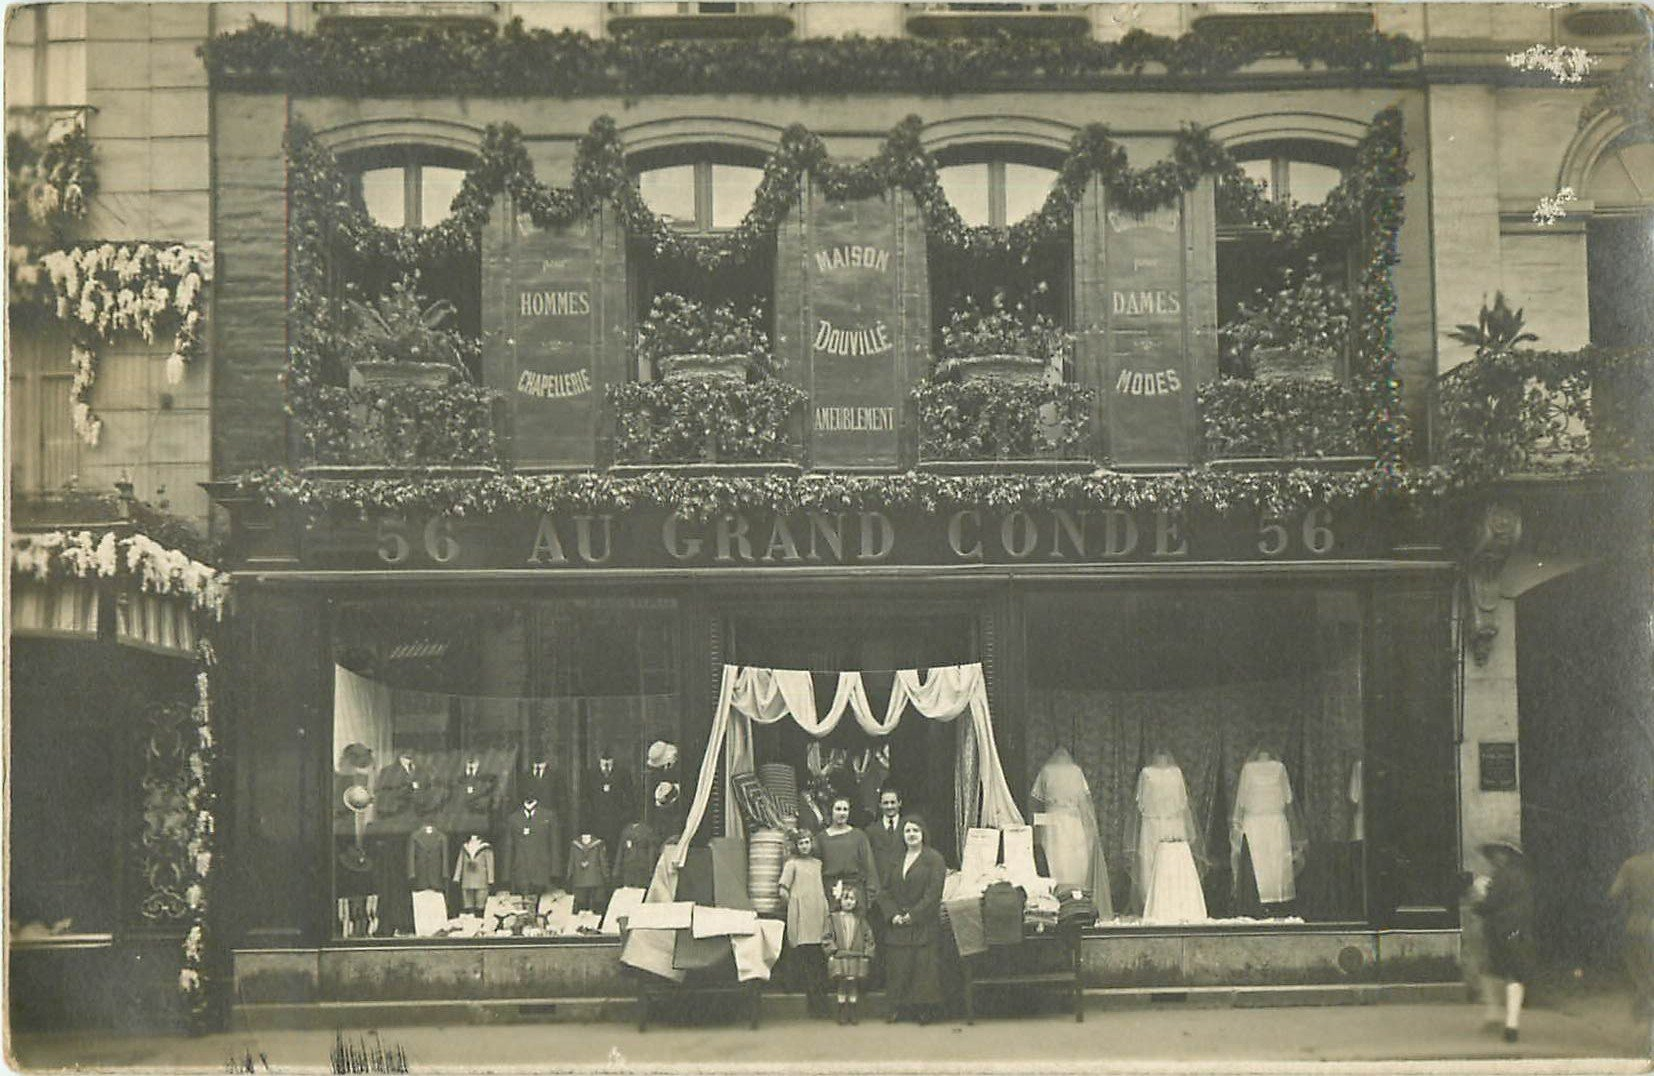 78 SAINT GERMAIN EN LAYE. Photo carte postale du Magasin Au Grand Condé. Chapellerie et Modes